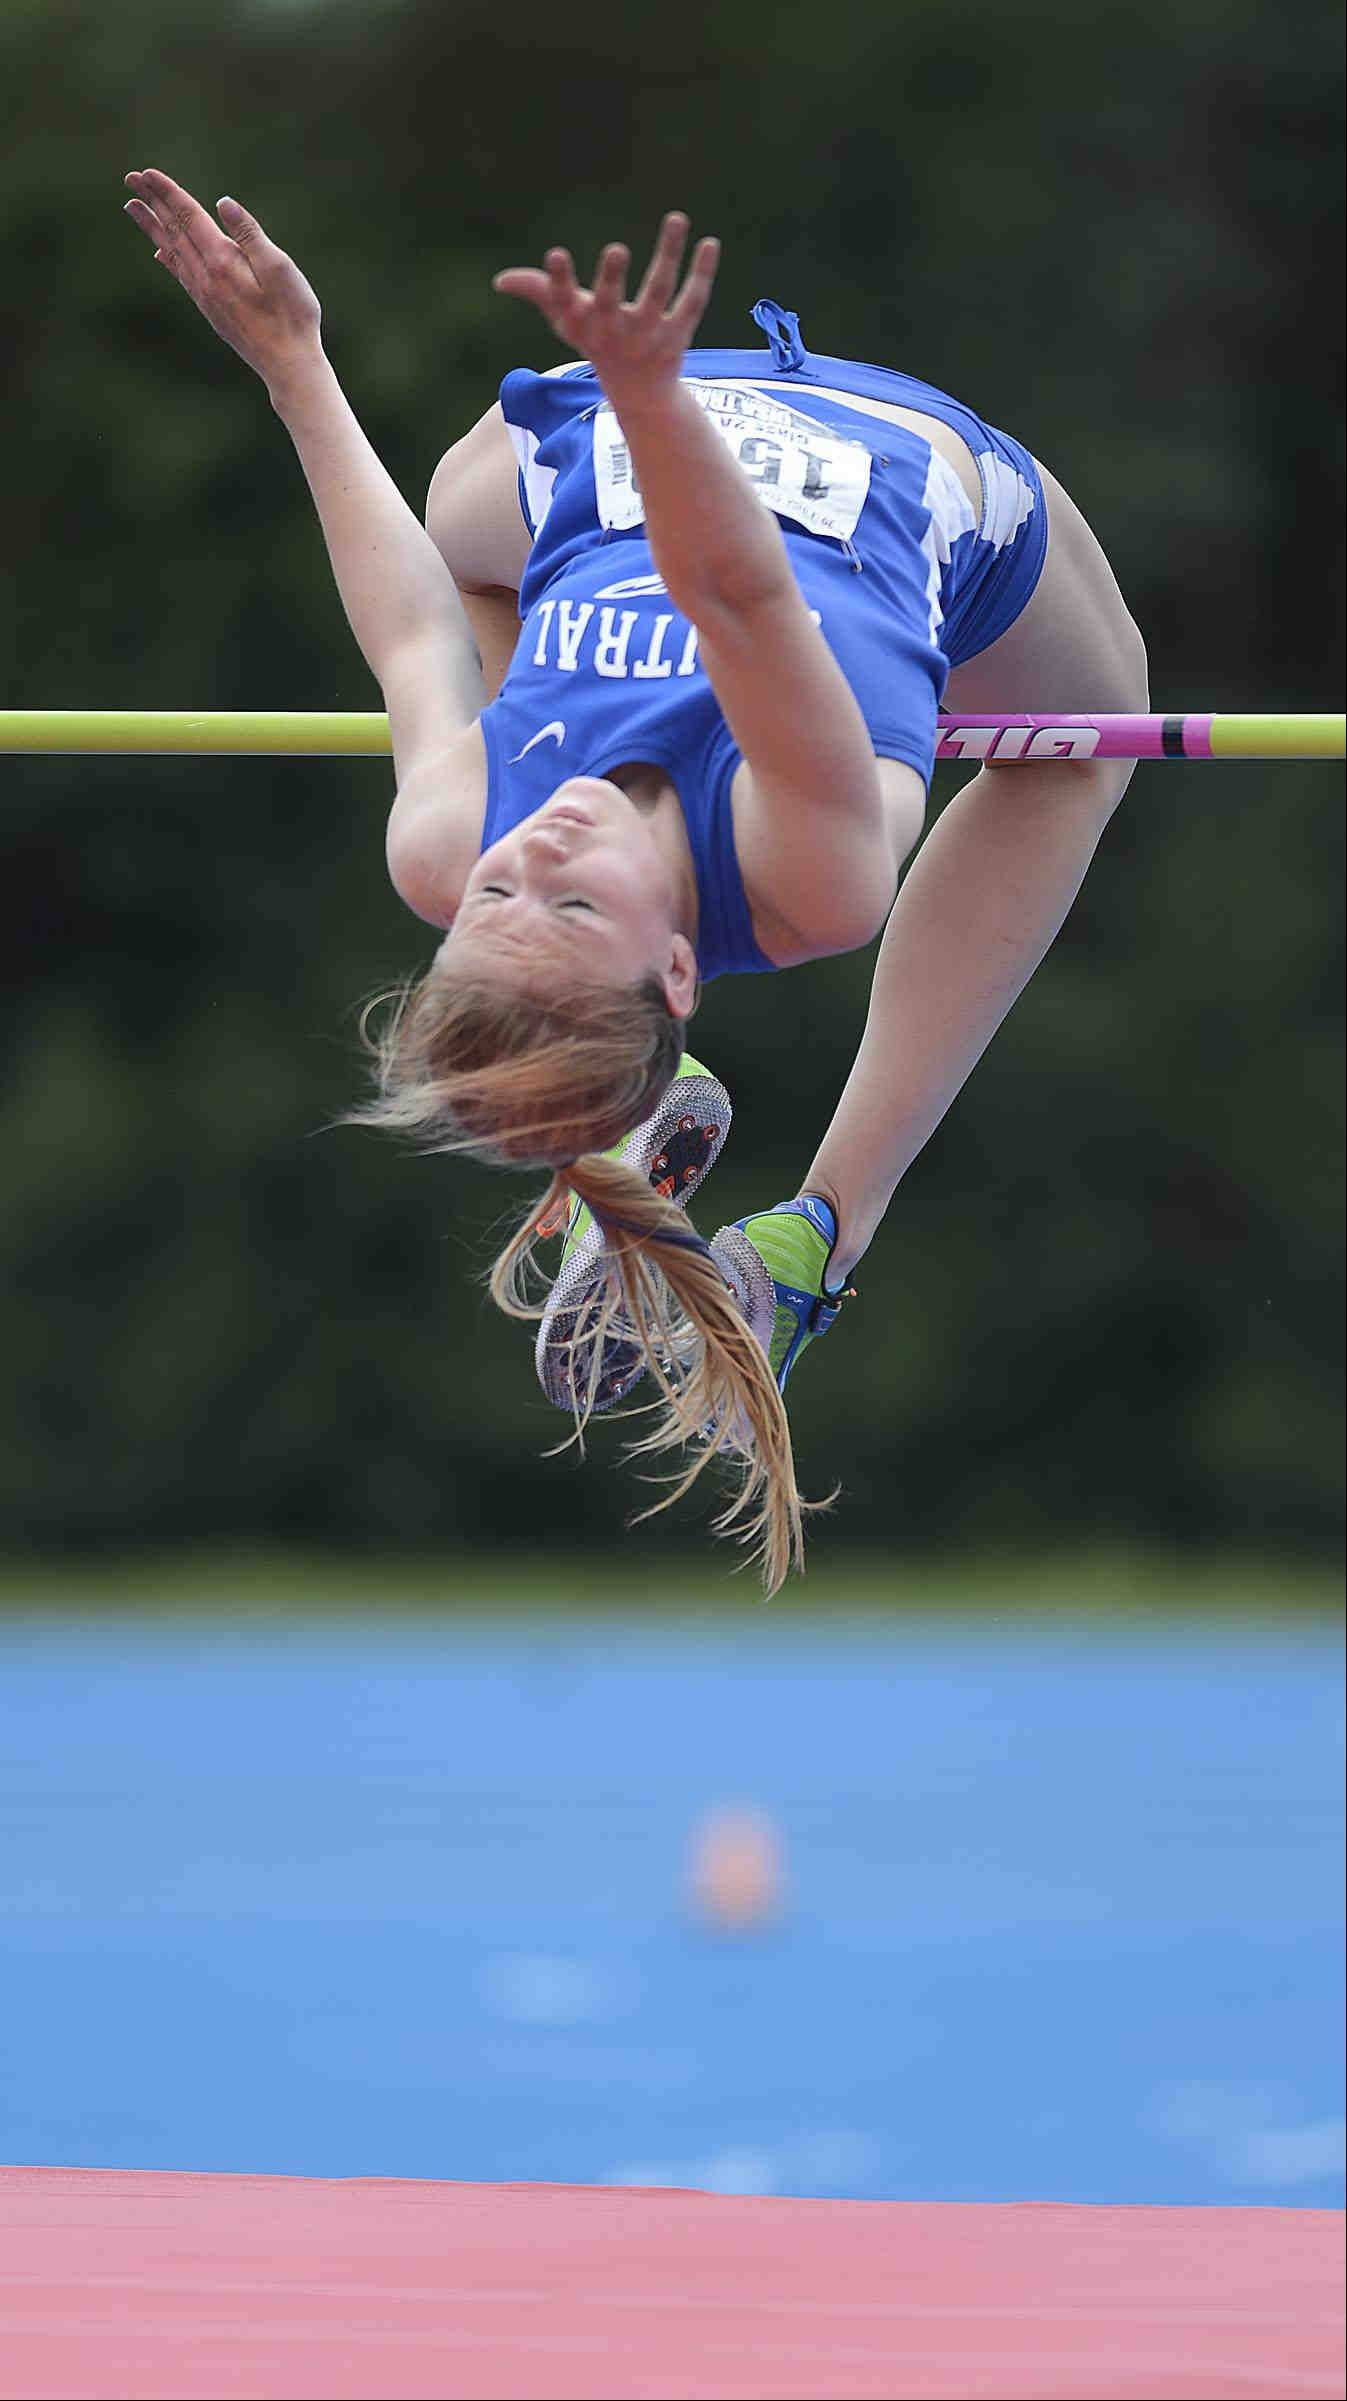 Burlington Central's Katie Trupp clears the high jump bar at five foot six inches Saturday at the Class 2A girls state track and field finals at O'Brien Stadium at Eastern Illinois University in Charleston.